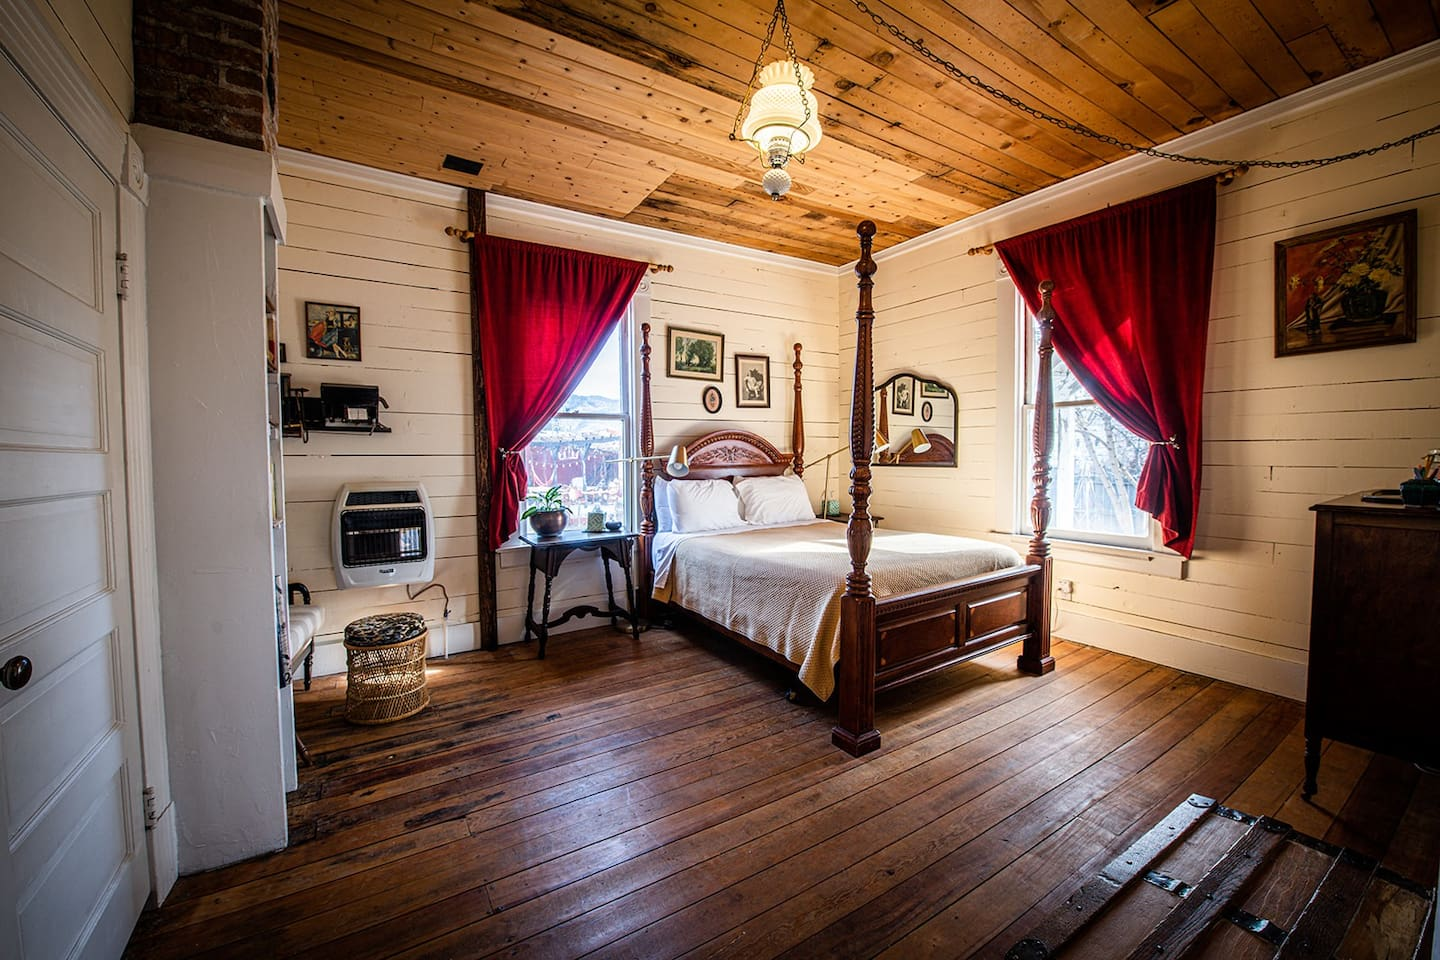 The Blithedale Suite includes two Queen bedrooms separated by a door and private attached bathroom.